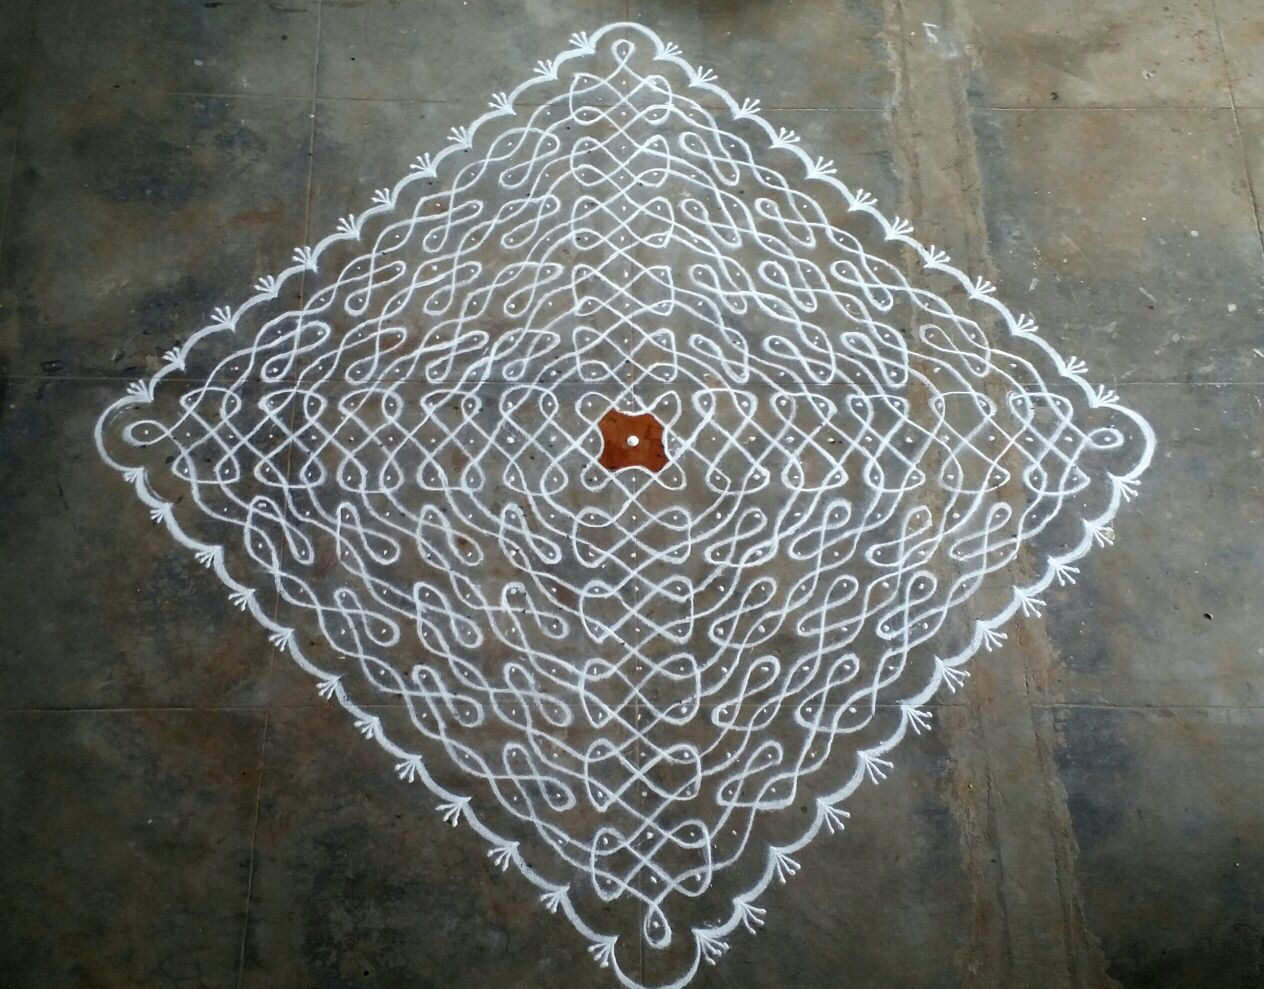 25 dots chikku complete connectivity kolam || Contest Kolam